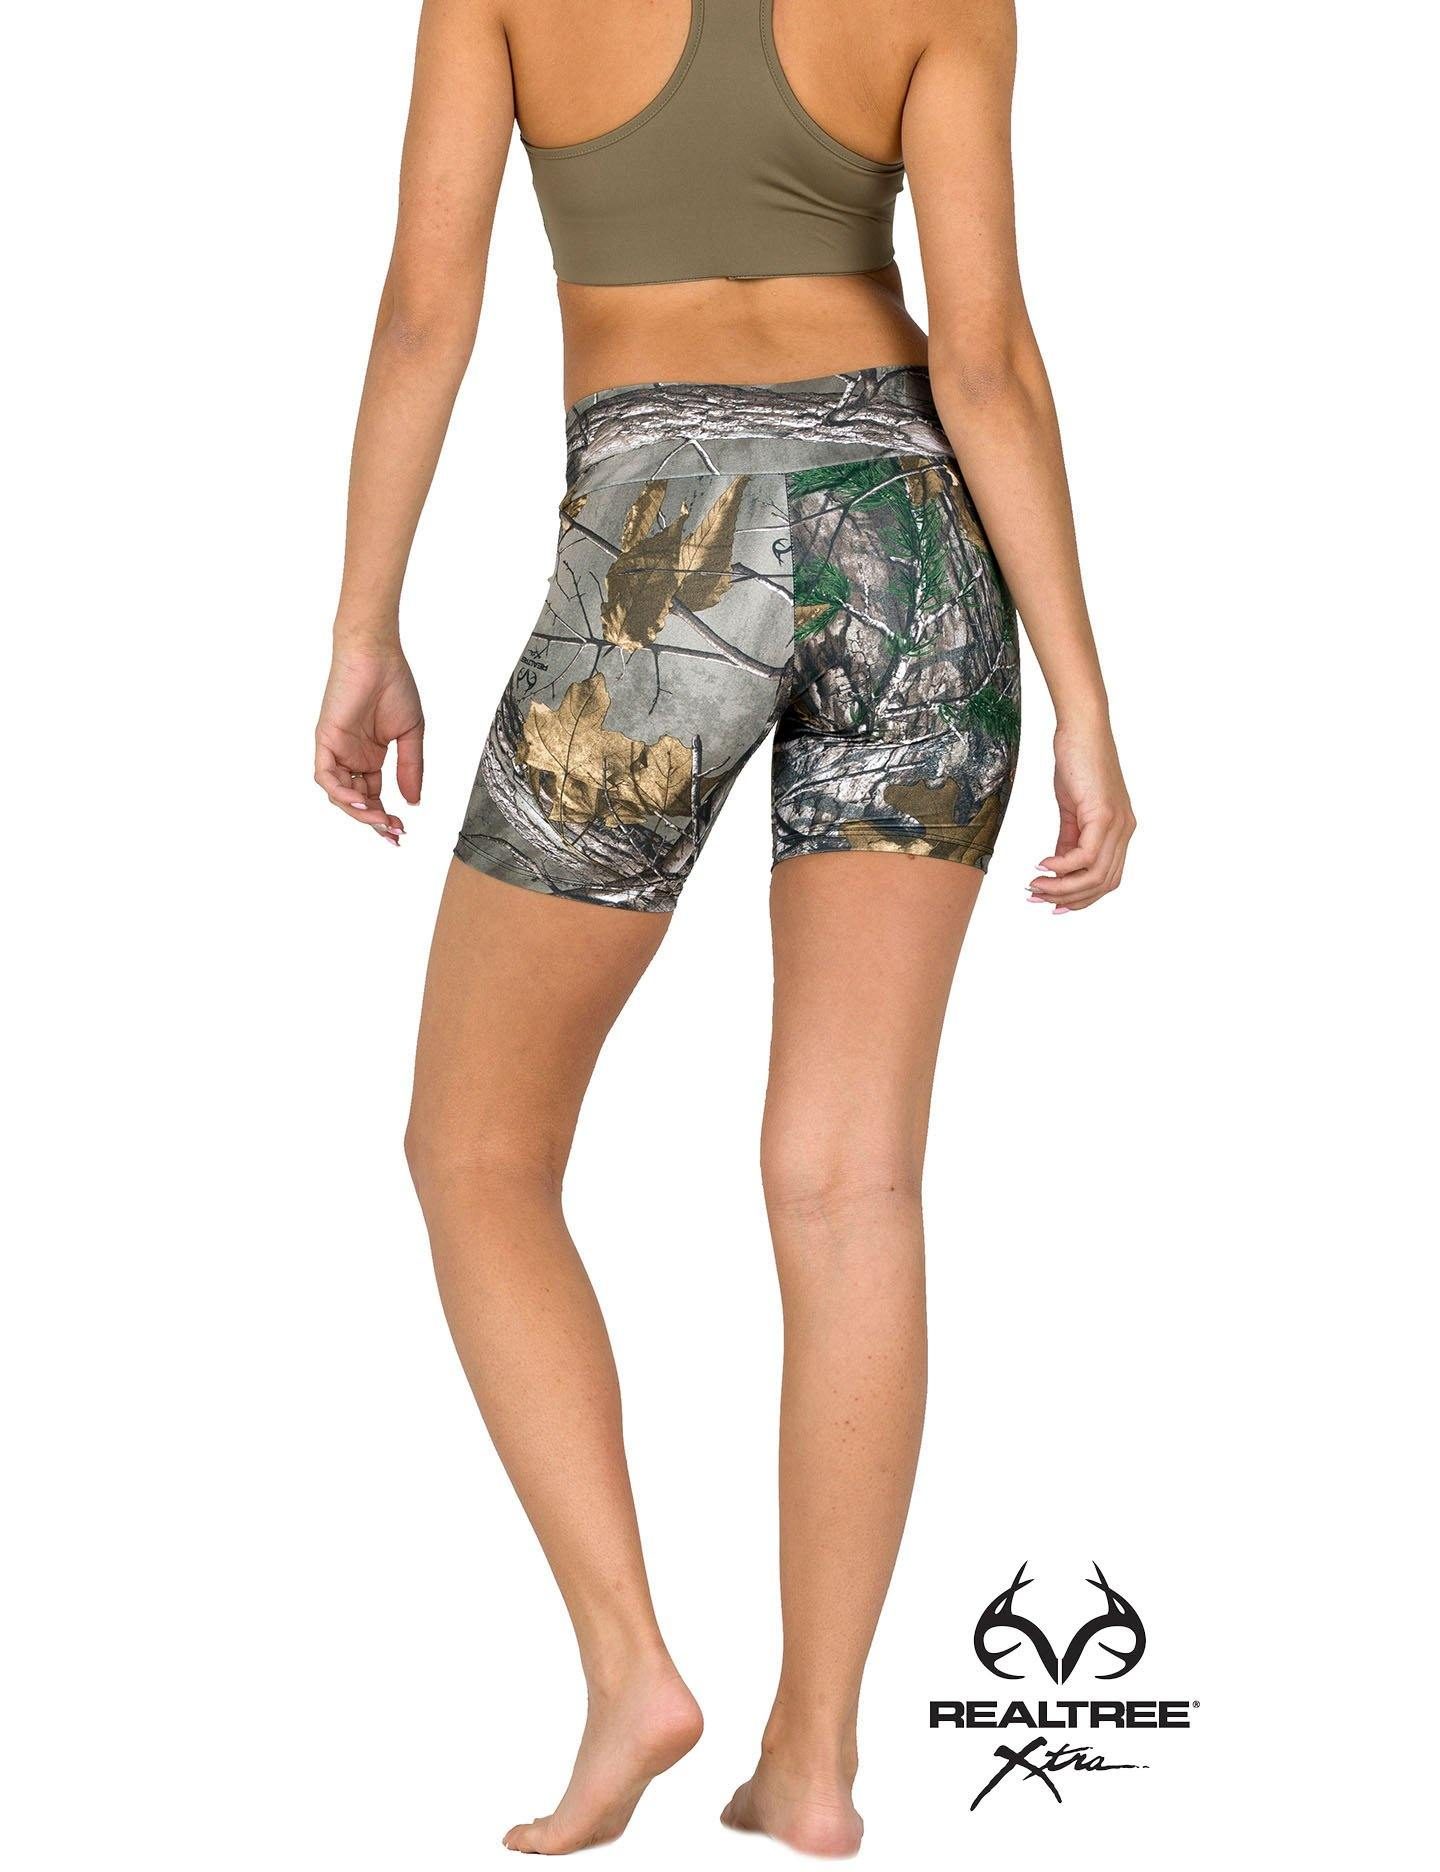 Apsara Shorts Low Waist, Realtree Xtra